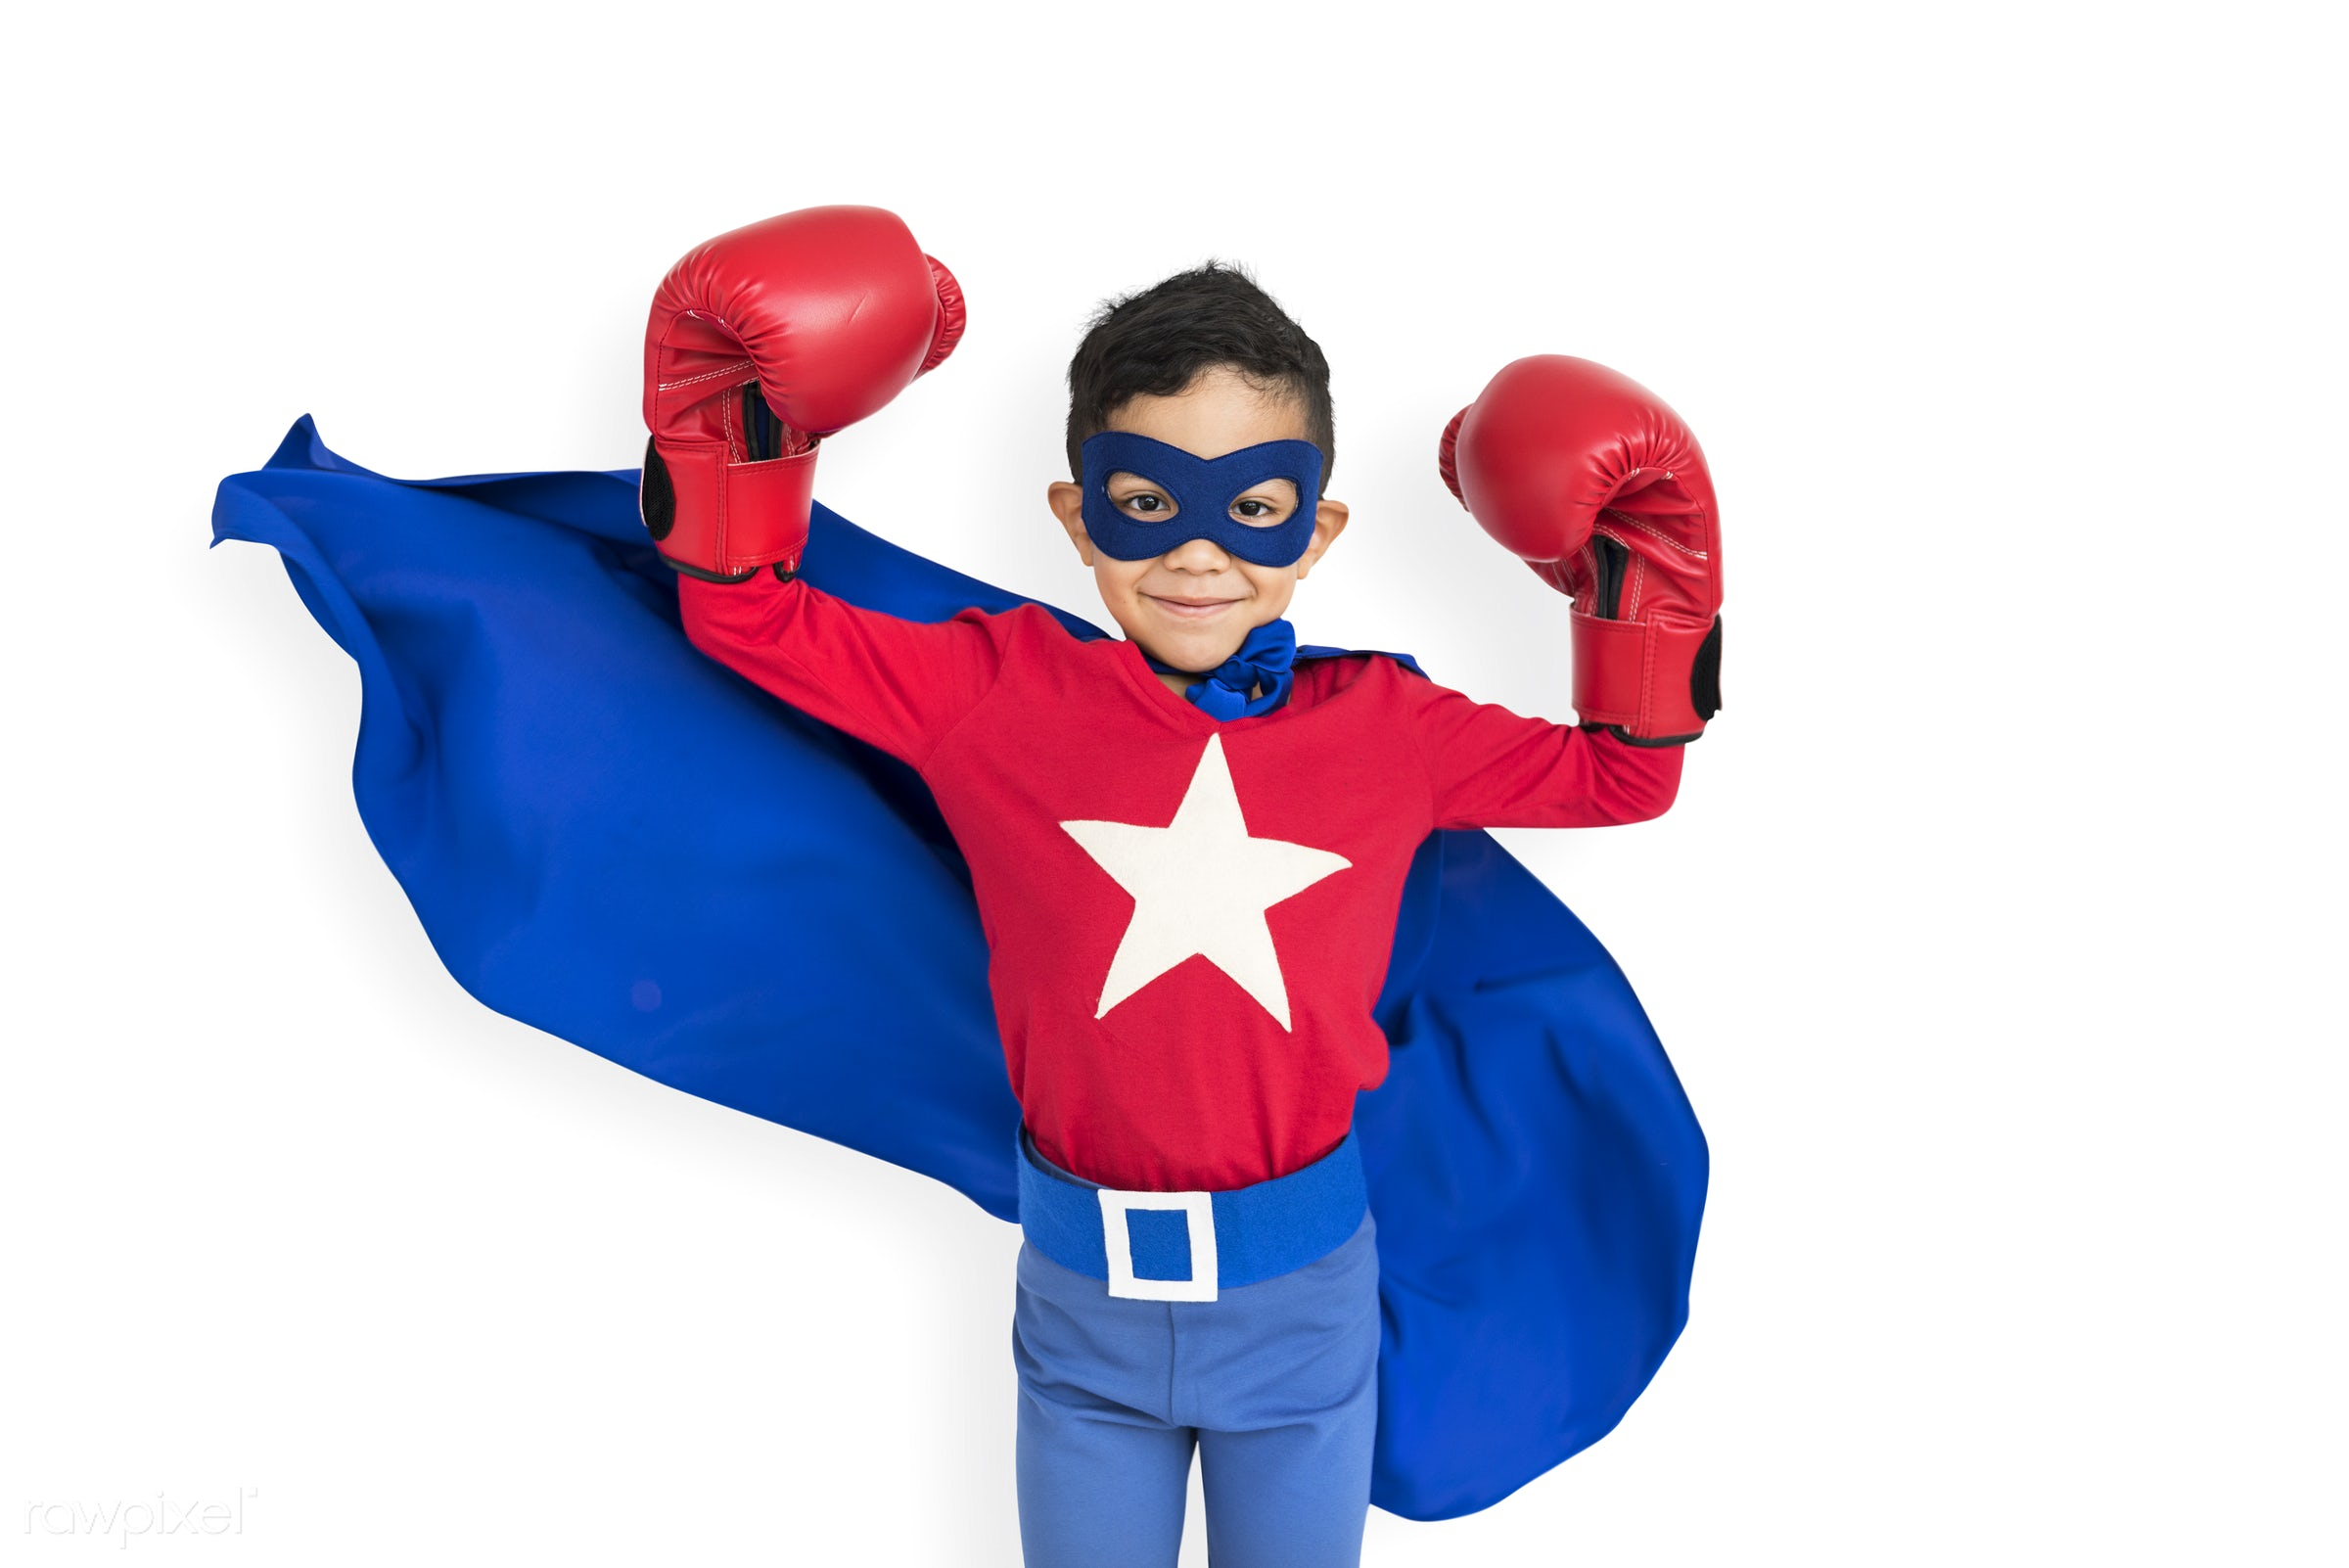 alone, boy, cheerful, child, costume, isolated, kid, one, playful, smiling, superhero, young, youth